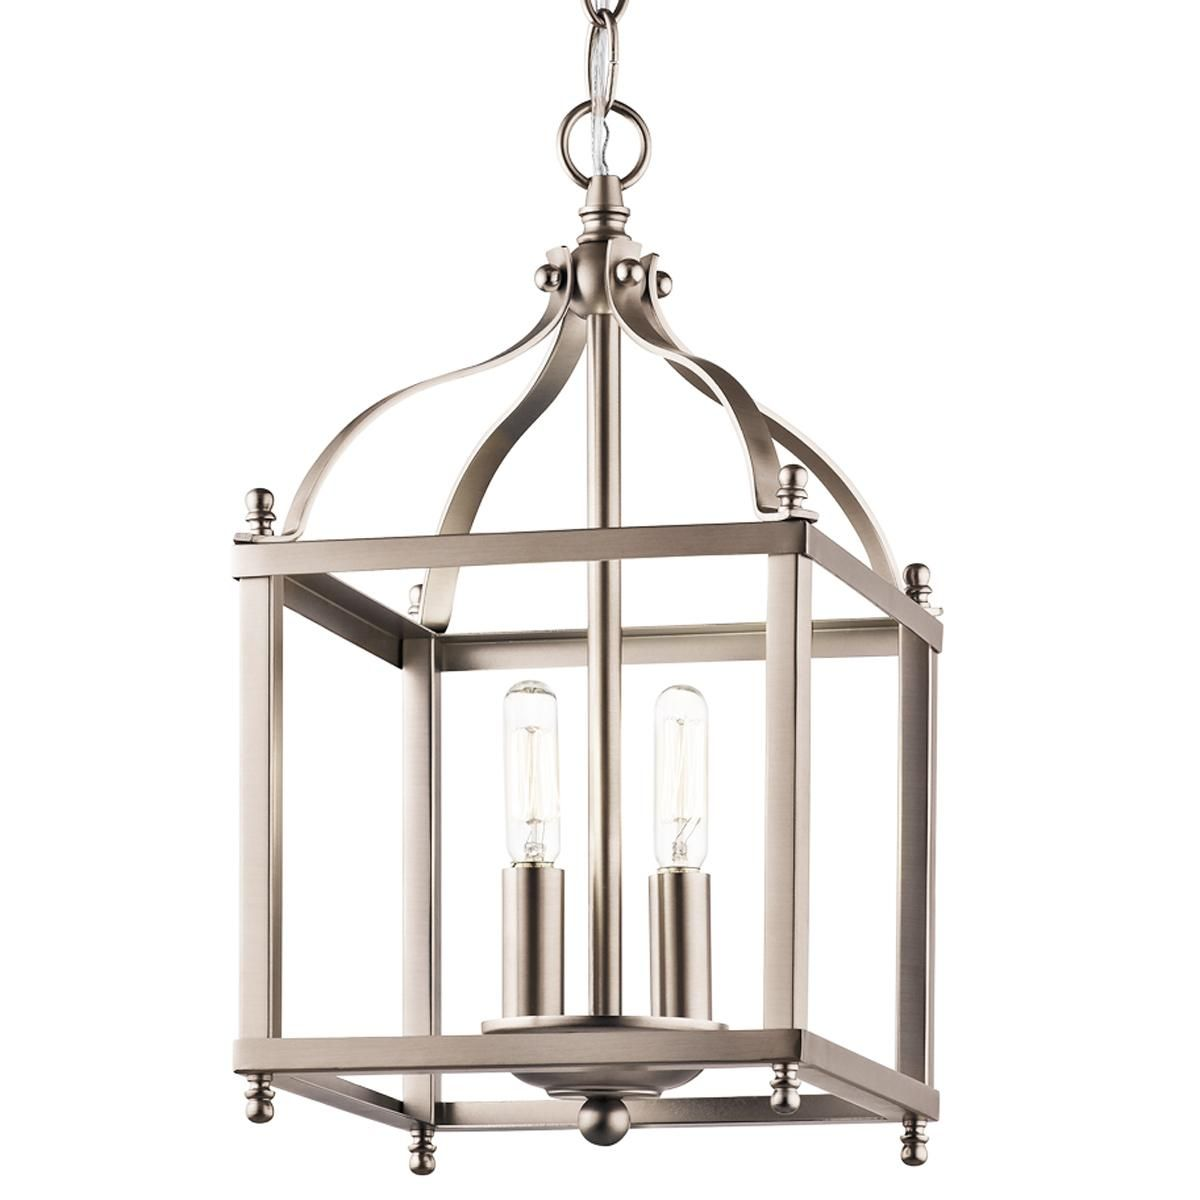 separation shoes bc629 fab56 Arched Silhouette Pendant Light | Kitchen Inspiration ...